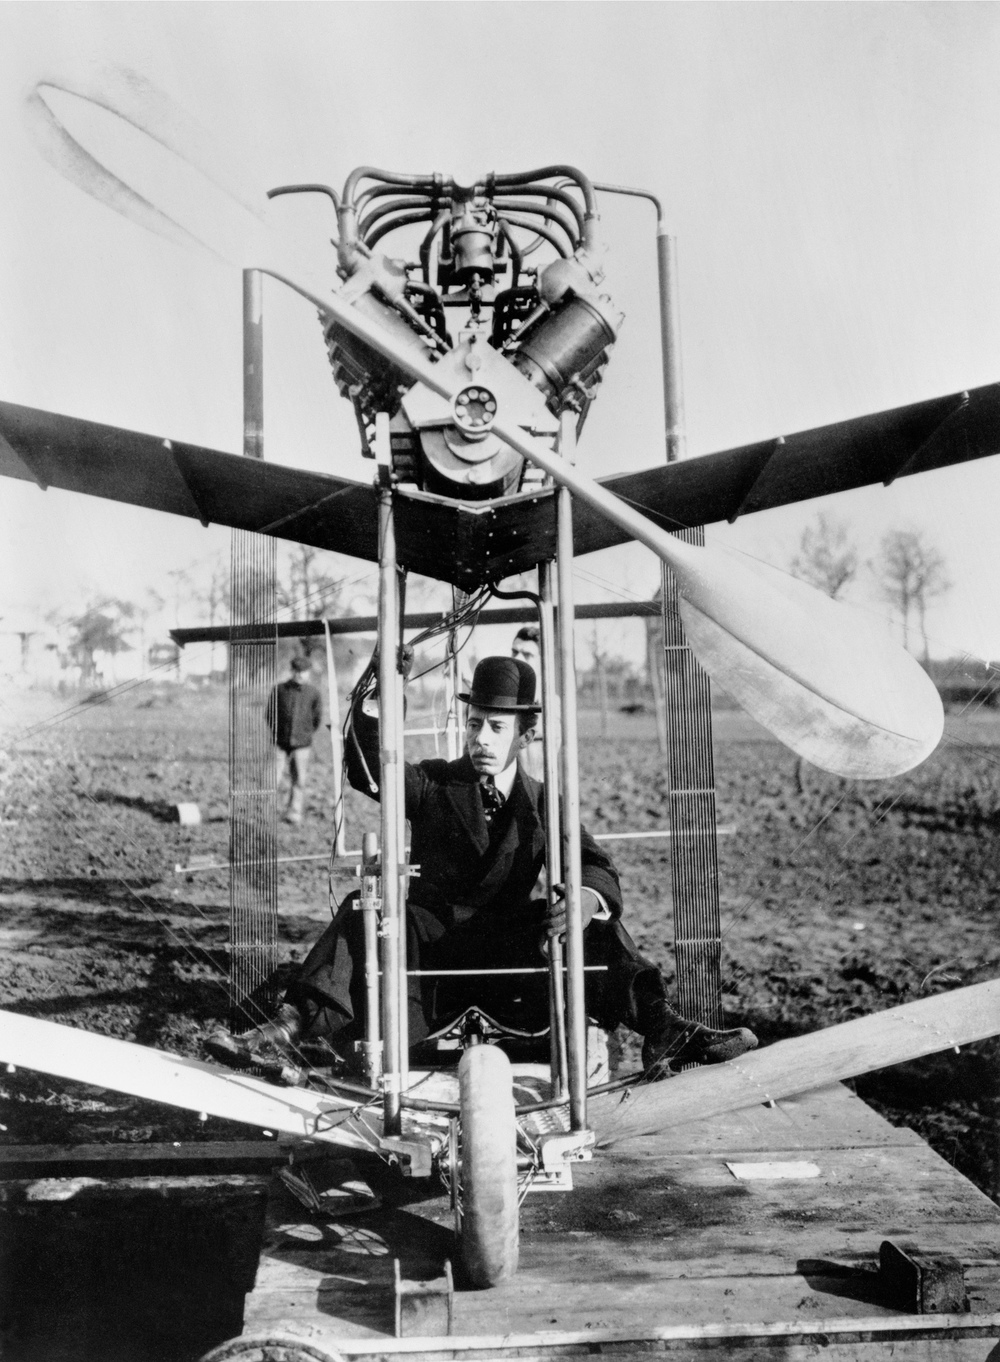 Santos-Dumont's 14-bis plane was a contemporary of the Wright Brothers' planes and the first with a wheeled undercarriage.